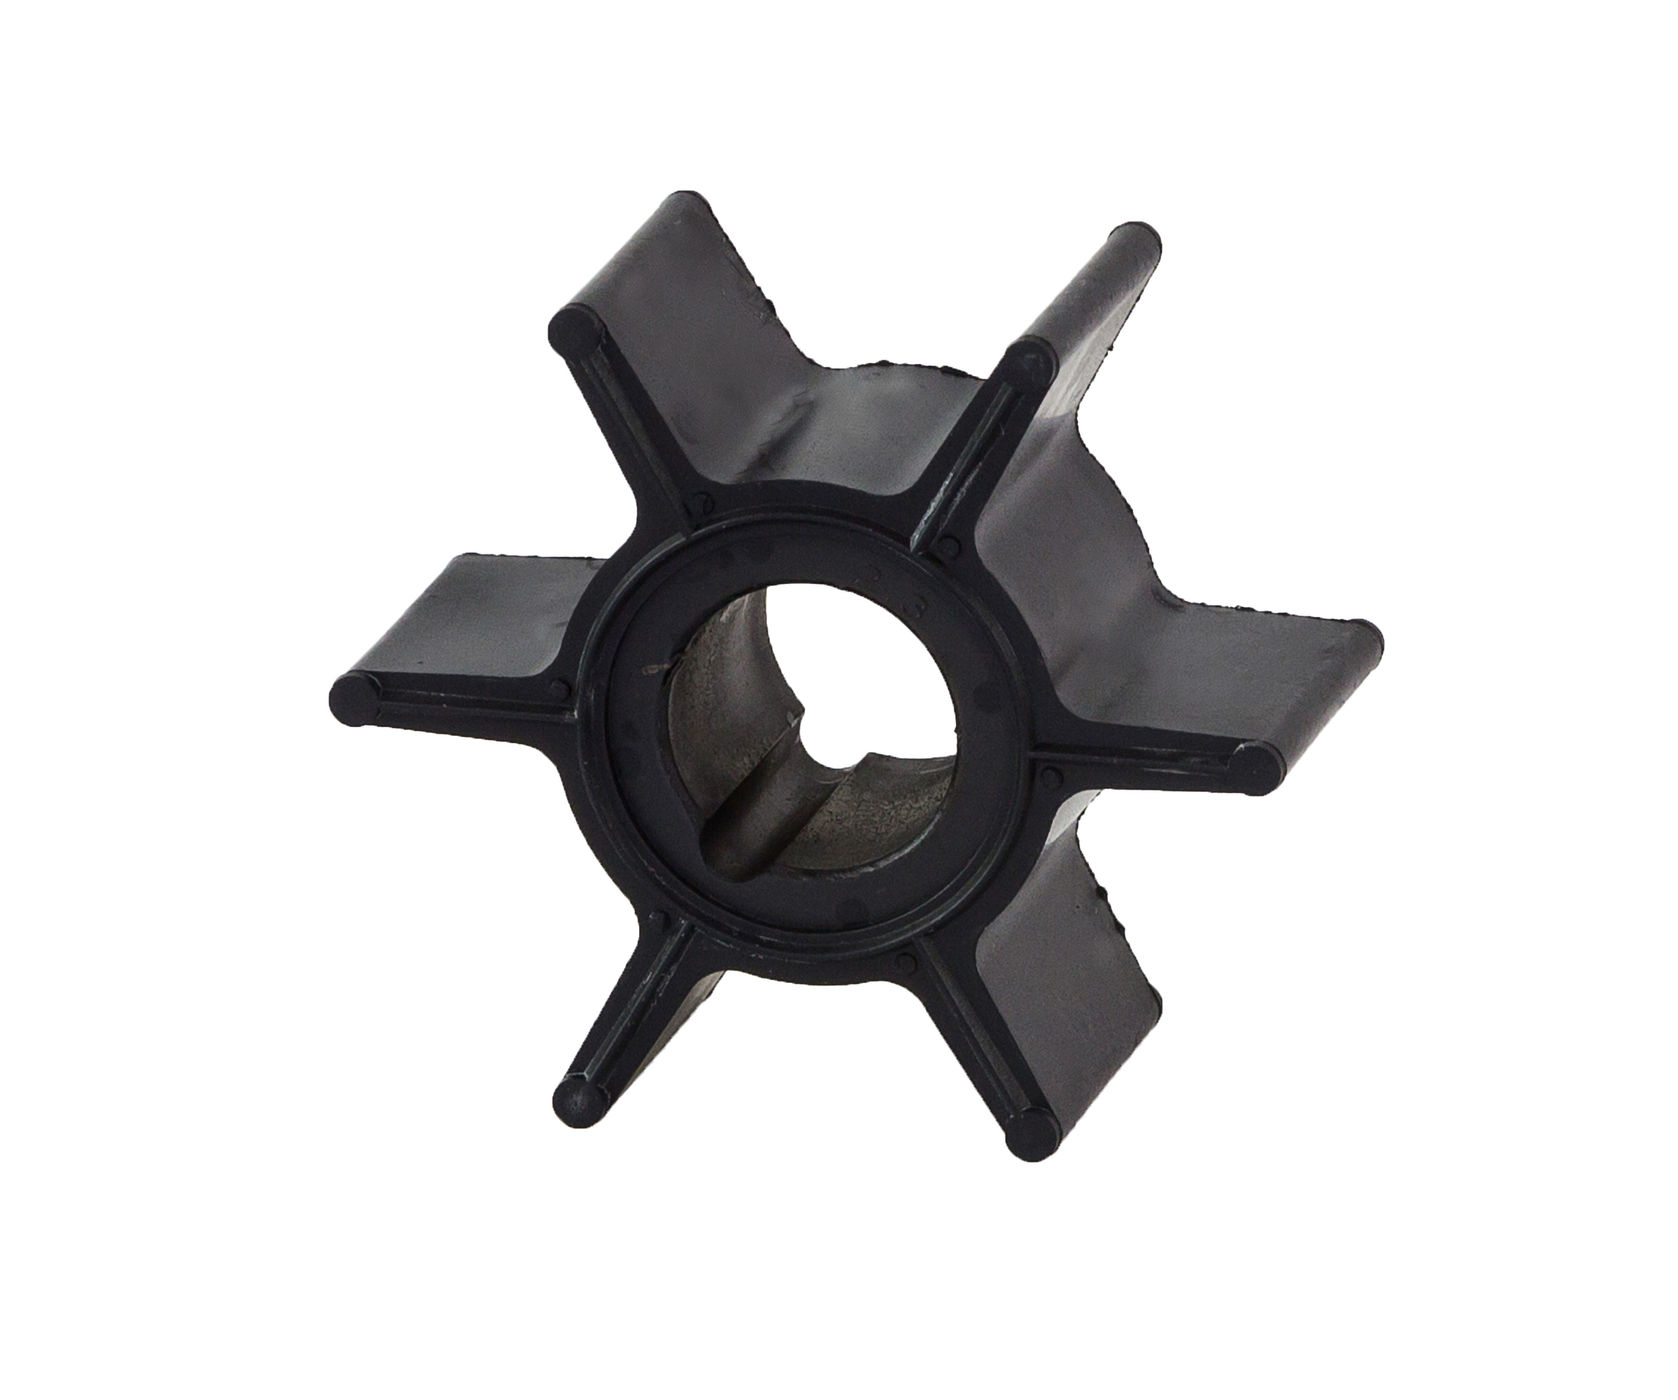 Cooling Impeller Tohatsu 9. 3B2650211